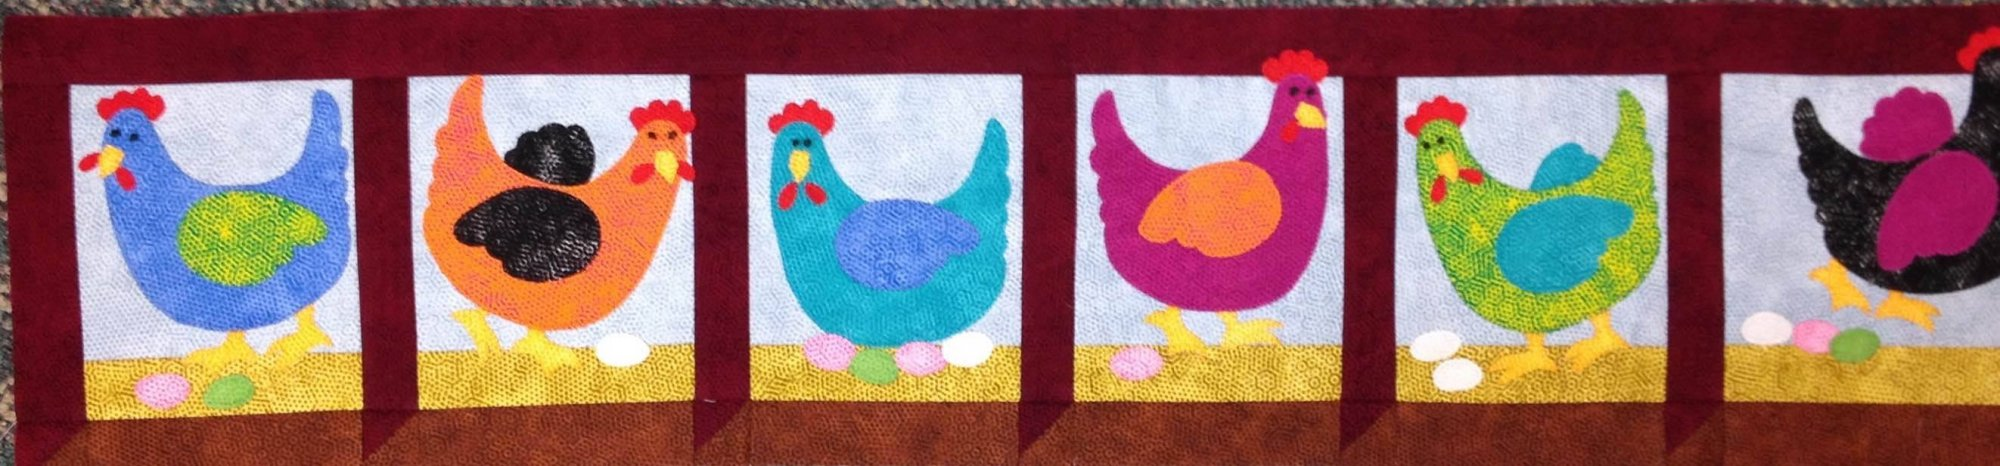 Row by Row Pattern 2016 (Chickens)